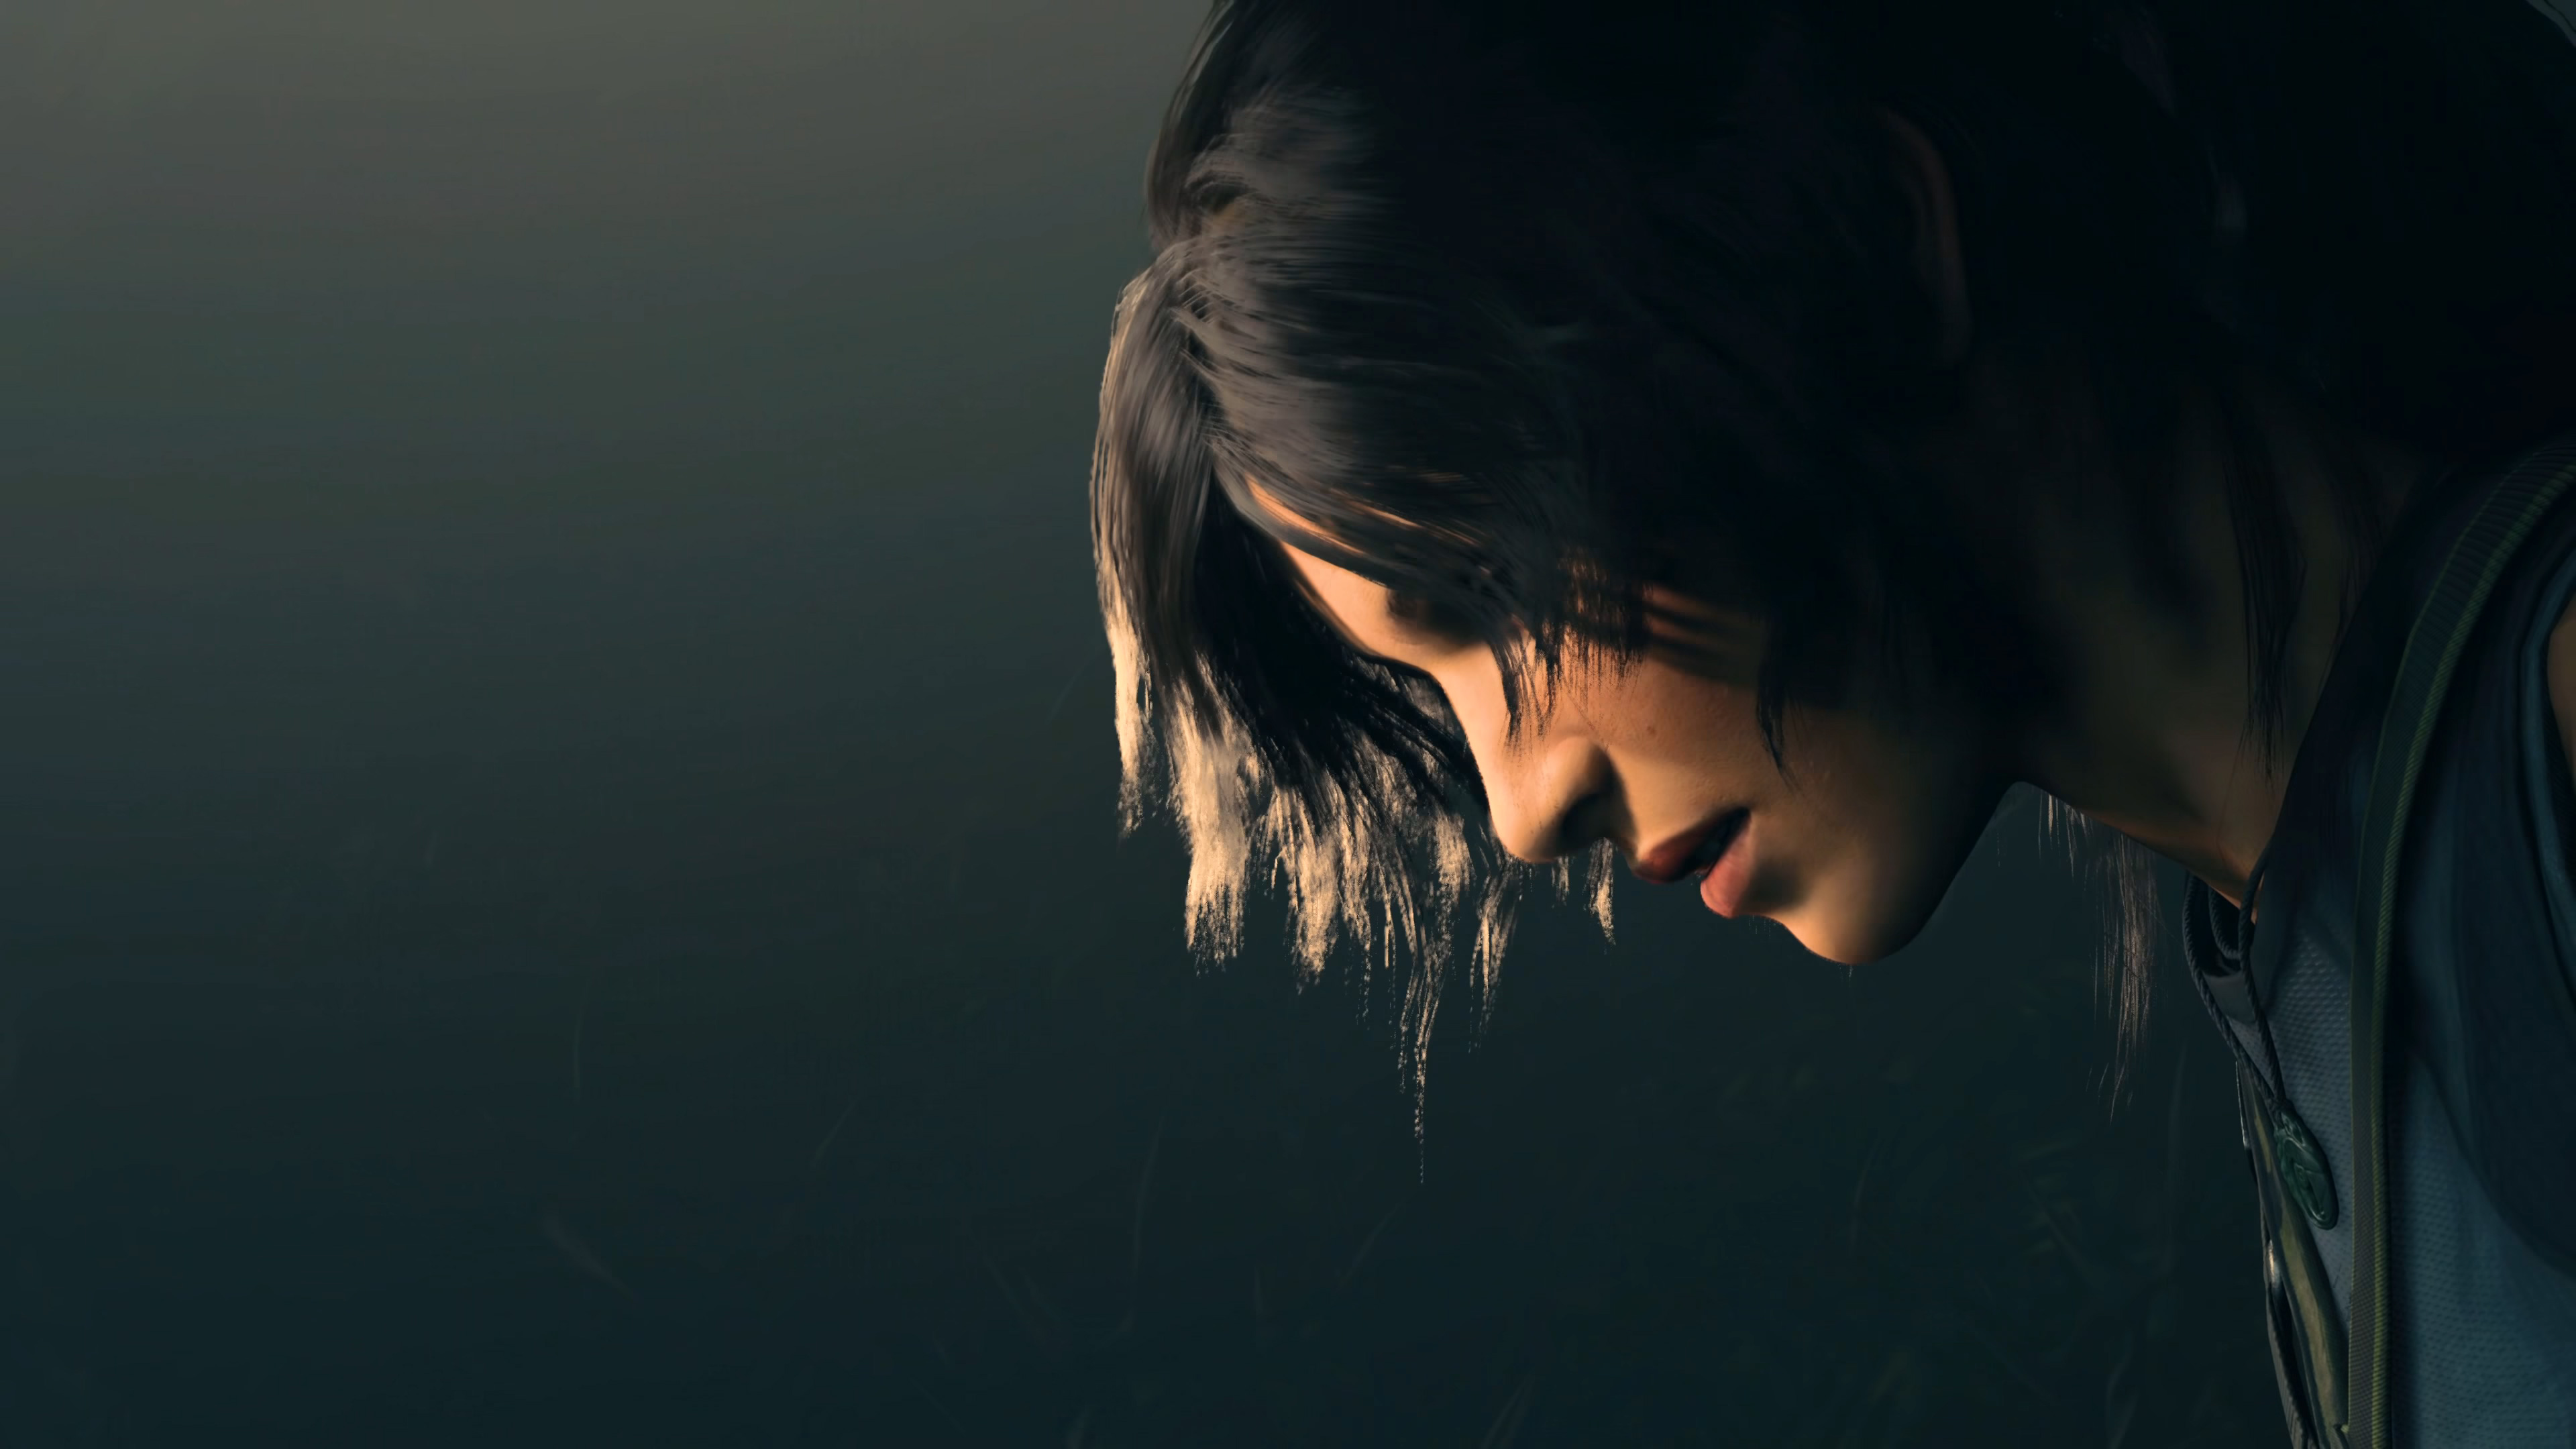 shadow of the tomb raider lara croft 1538343614 - Shadow Of The Tomb Raider Lara Croft - tomb raider wallpapers, shadow of the tomb raider wallpapers, lara croft wallpapers, hd-wallpapers, games wallpapers, 4k-wallpapers, 2018 games wallpapers